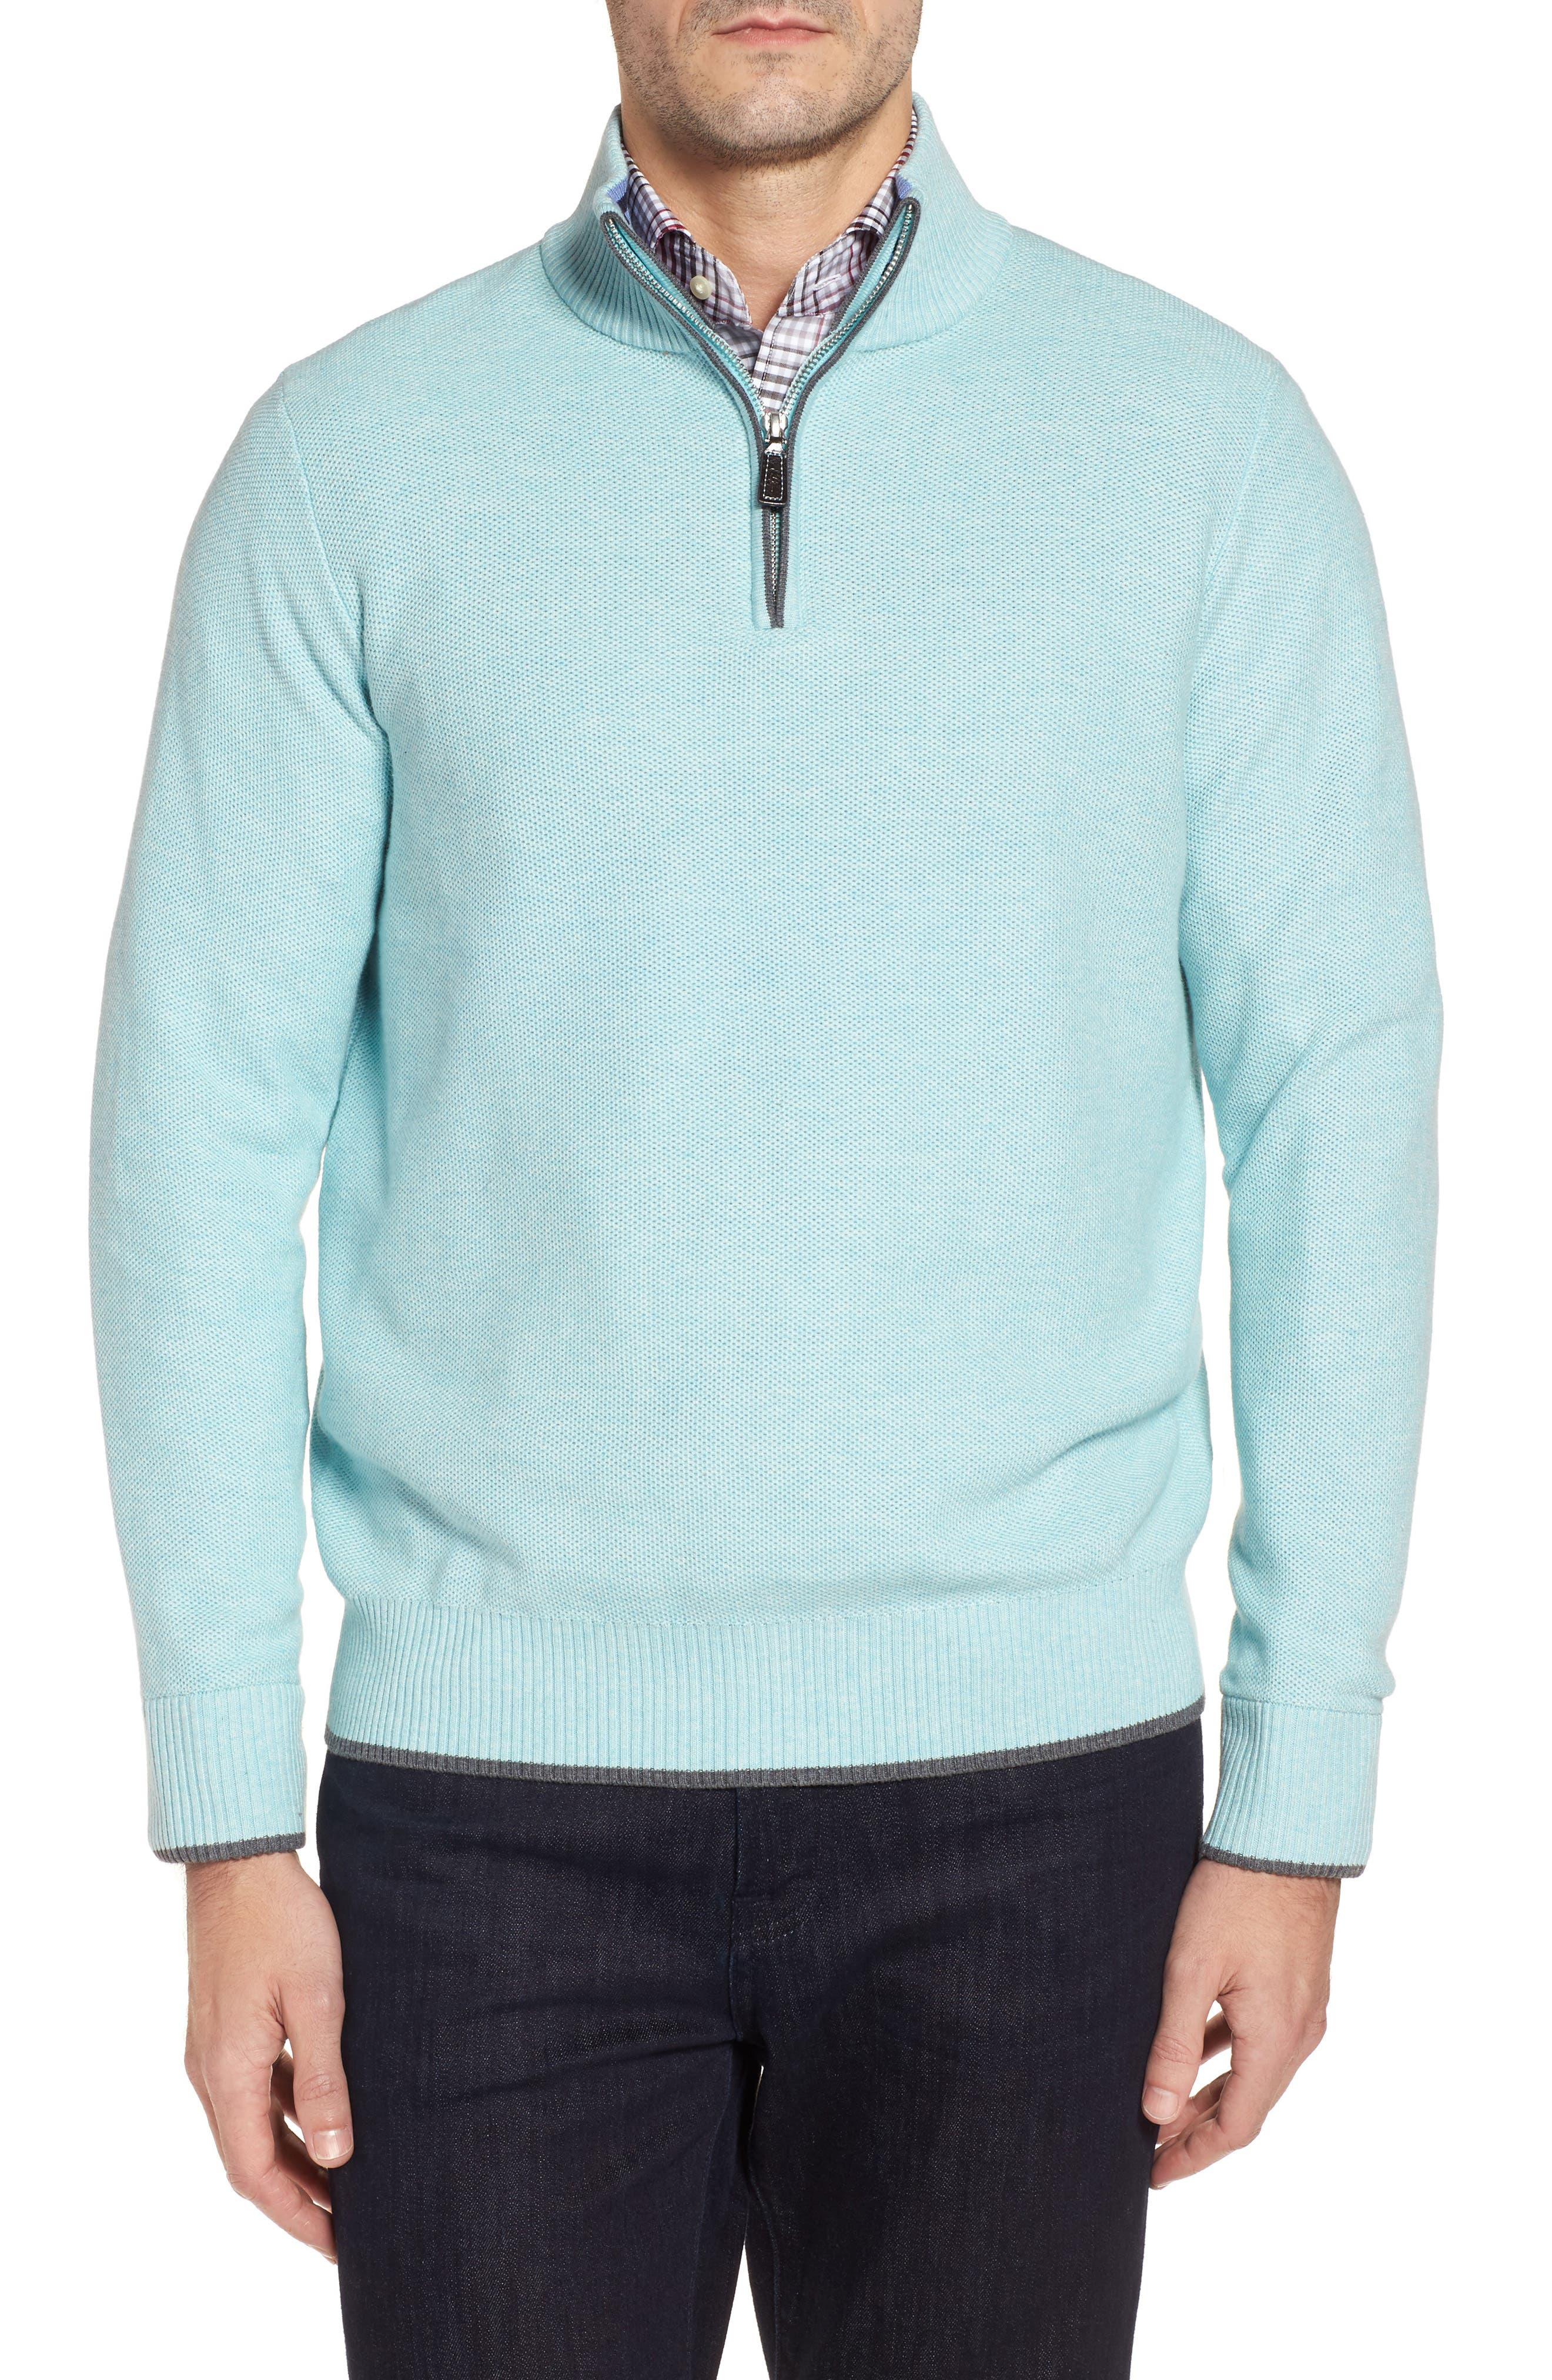 Alternate Image 1 Selected - TailorByrd Starks Tipped Quarter Zip Sweater